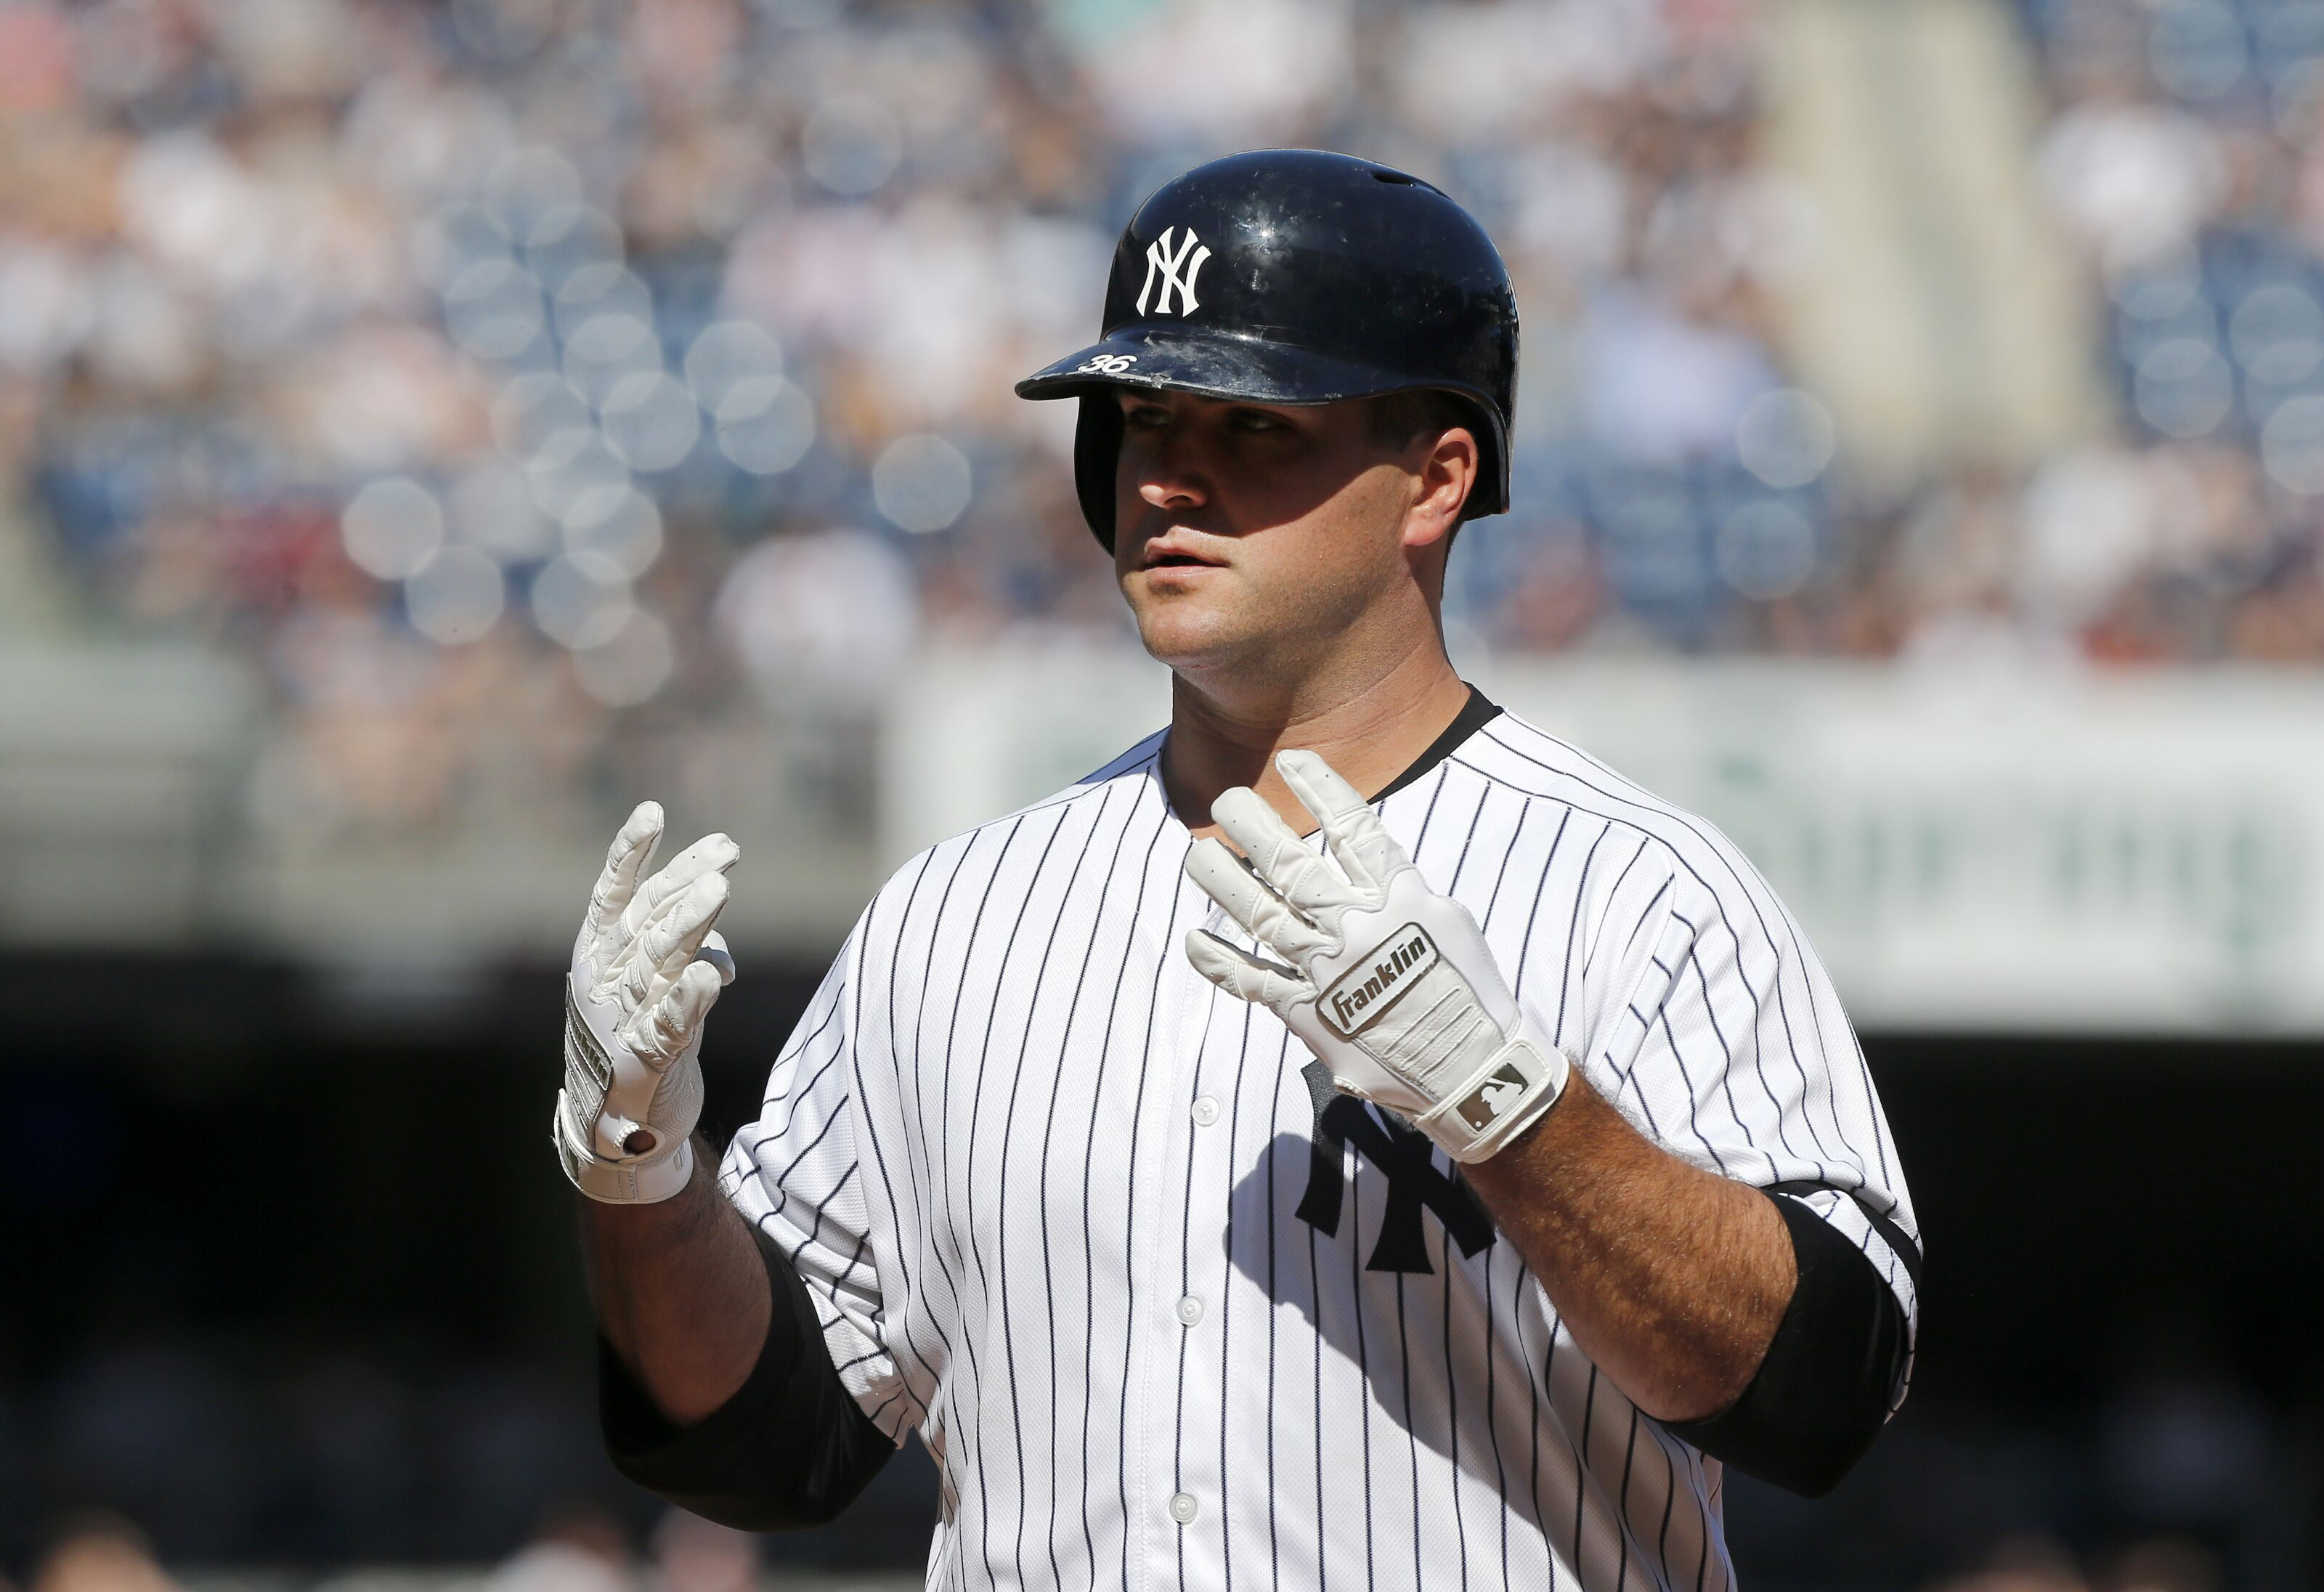 Yankees best options for the newly expanded 26-man roster spot